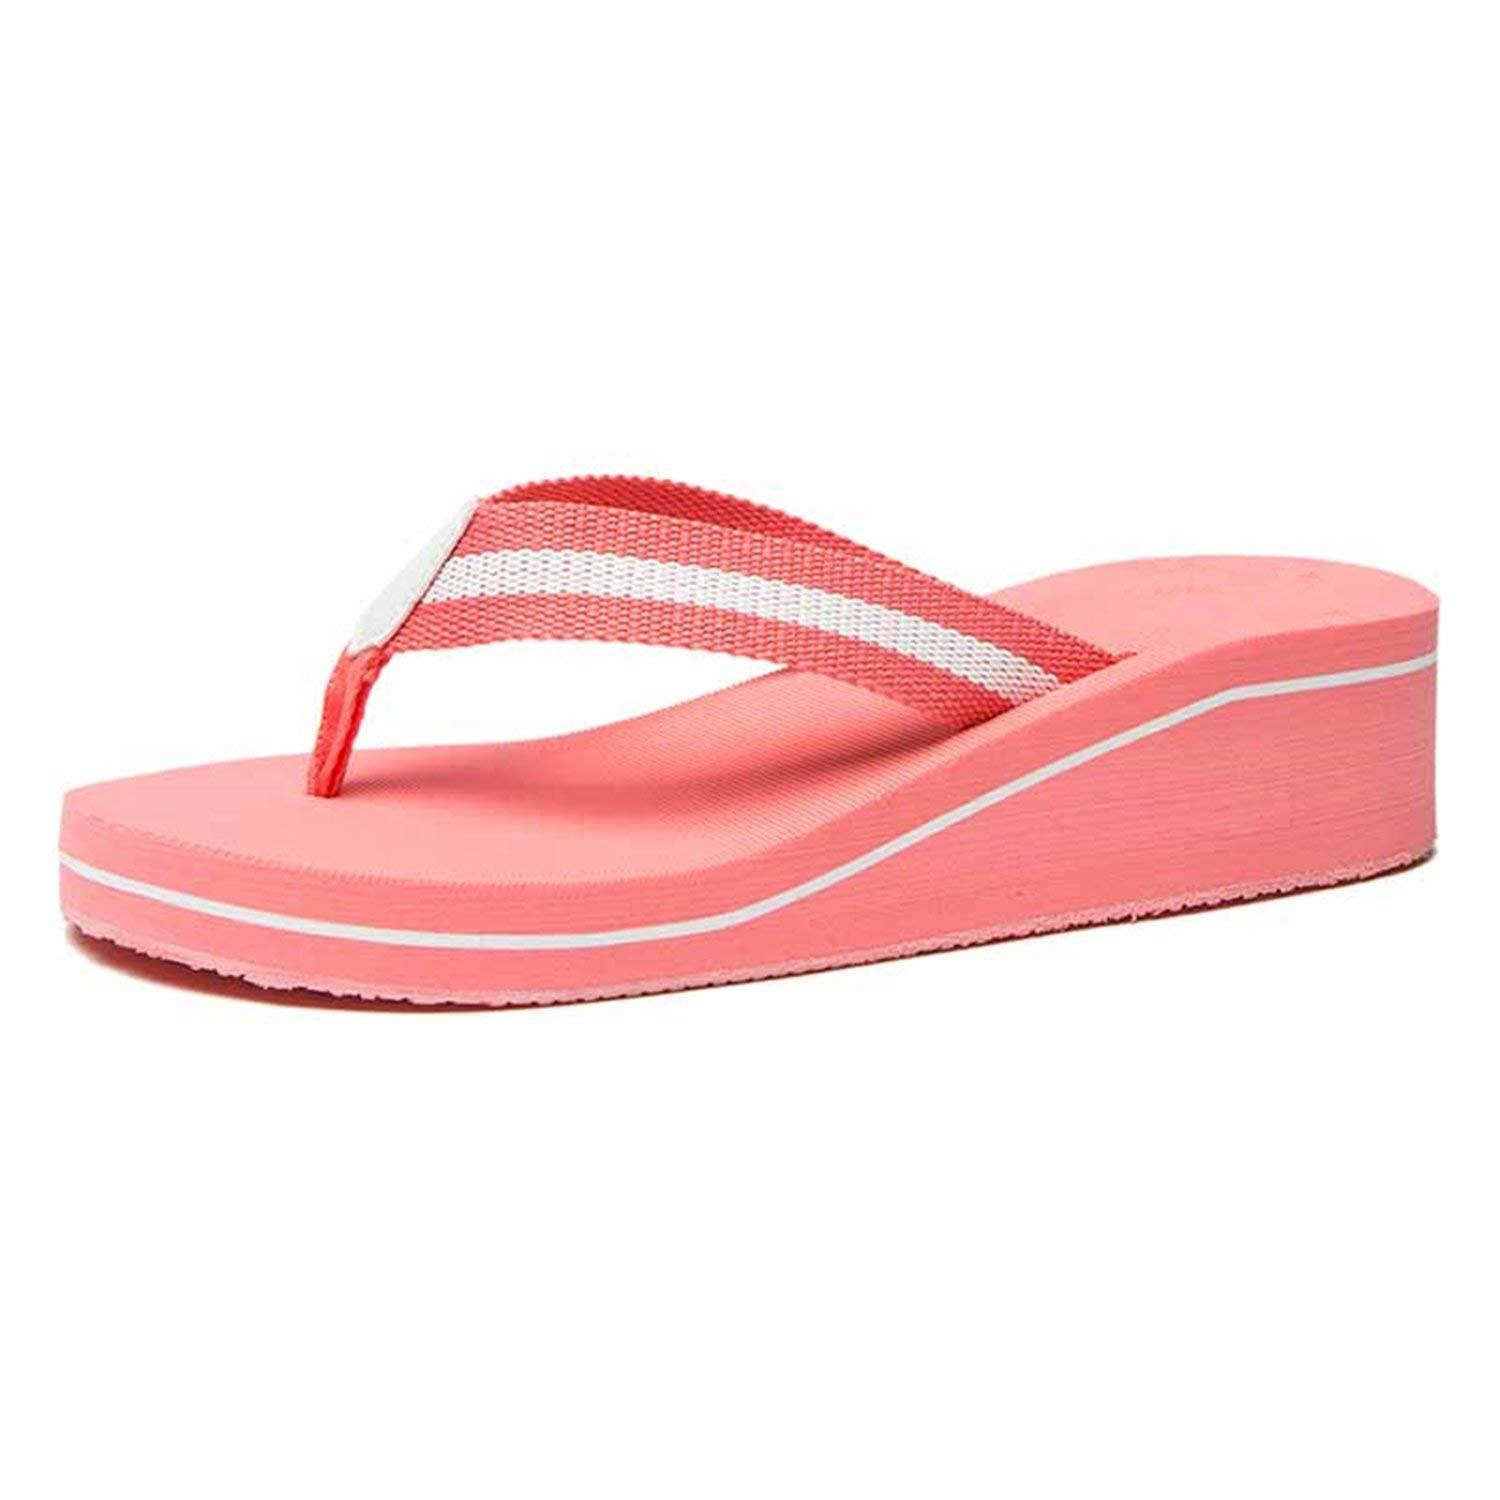 32f49680bfca86 Get Quotations · Jwhui Flip Flops Women Platform Sandals Summer Shoes Woman  Beach Flip Flops for Women s Fashion Casual